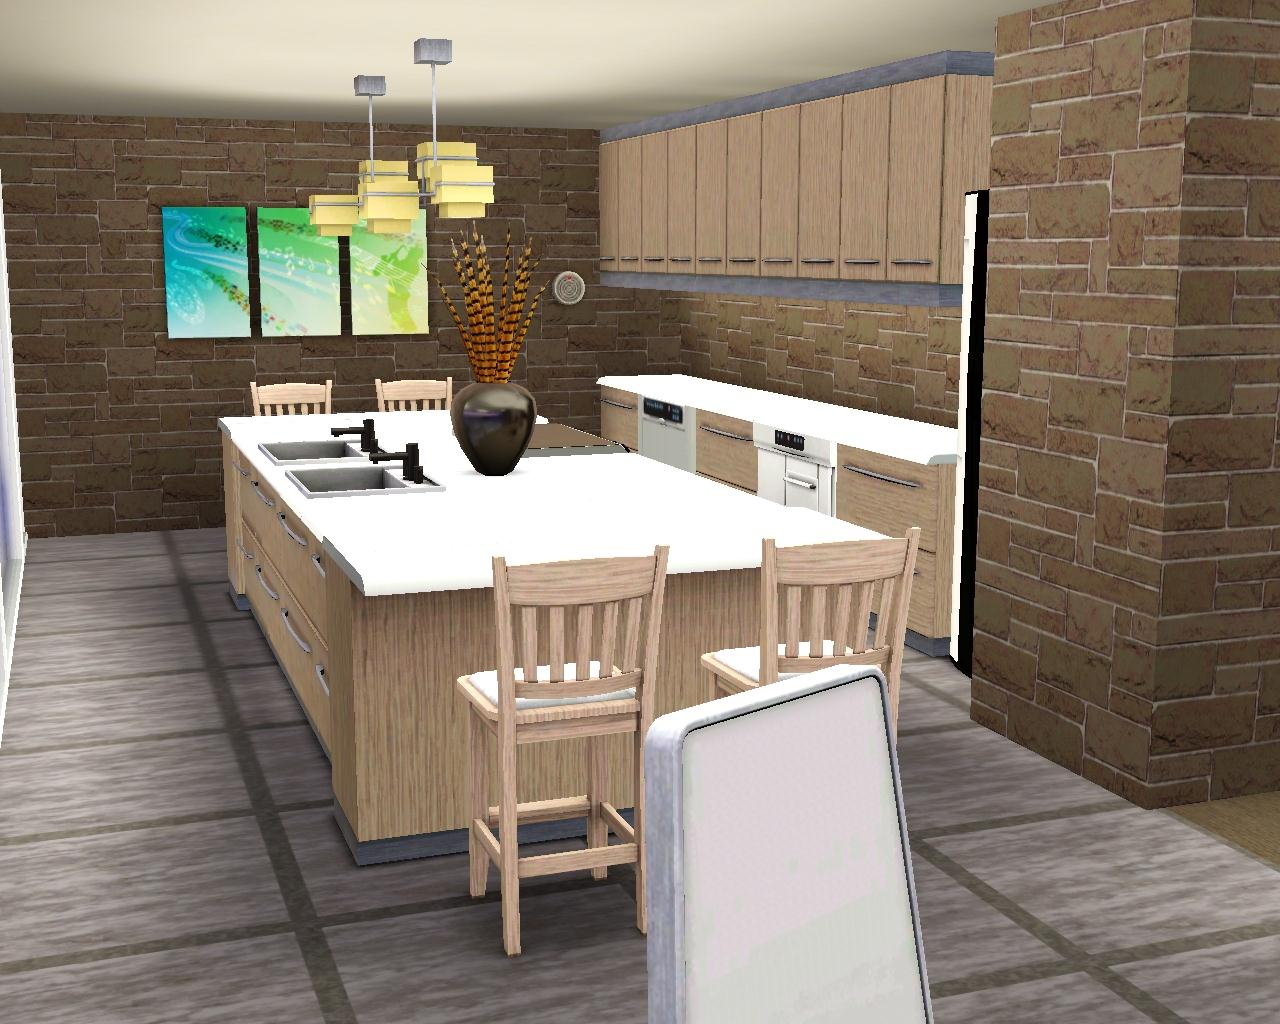 Sims Kitchen How To Make A Kitchen Island In Sims 3 Best Kitchen Island 2017